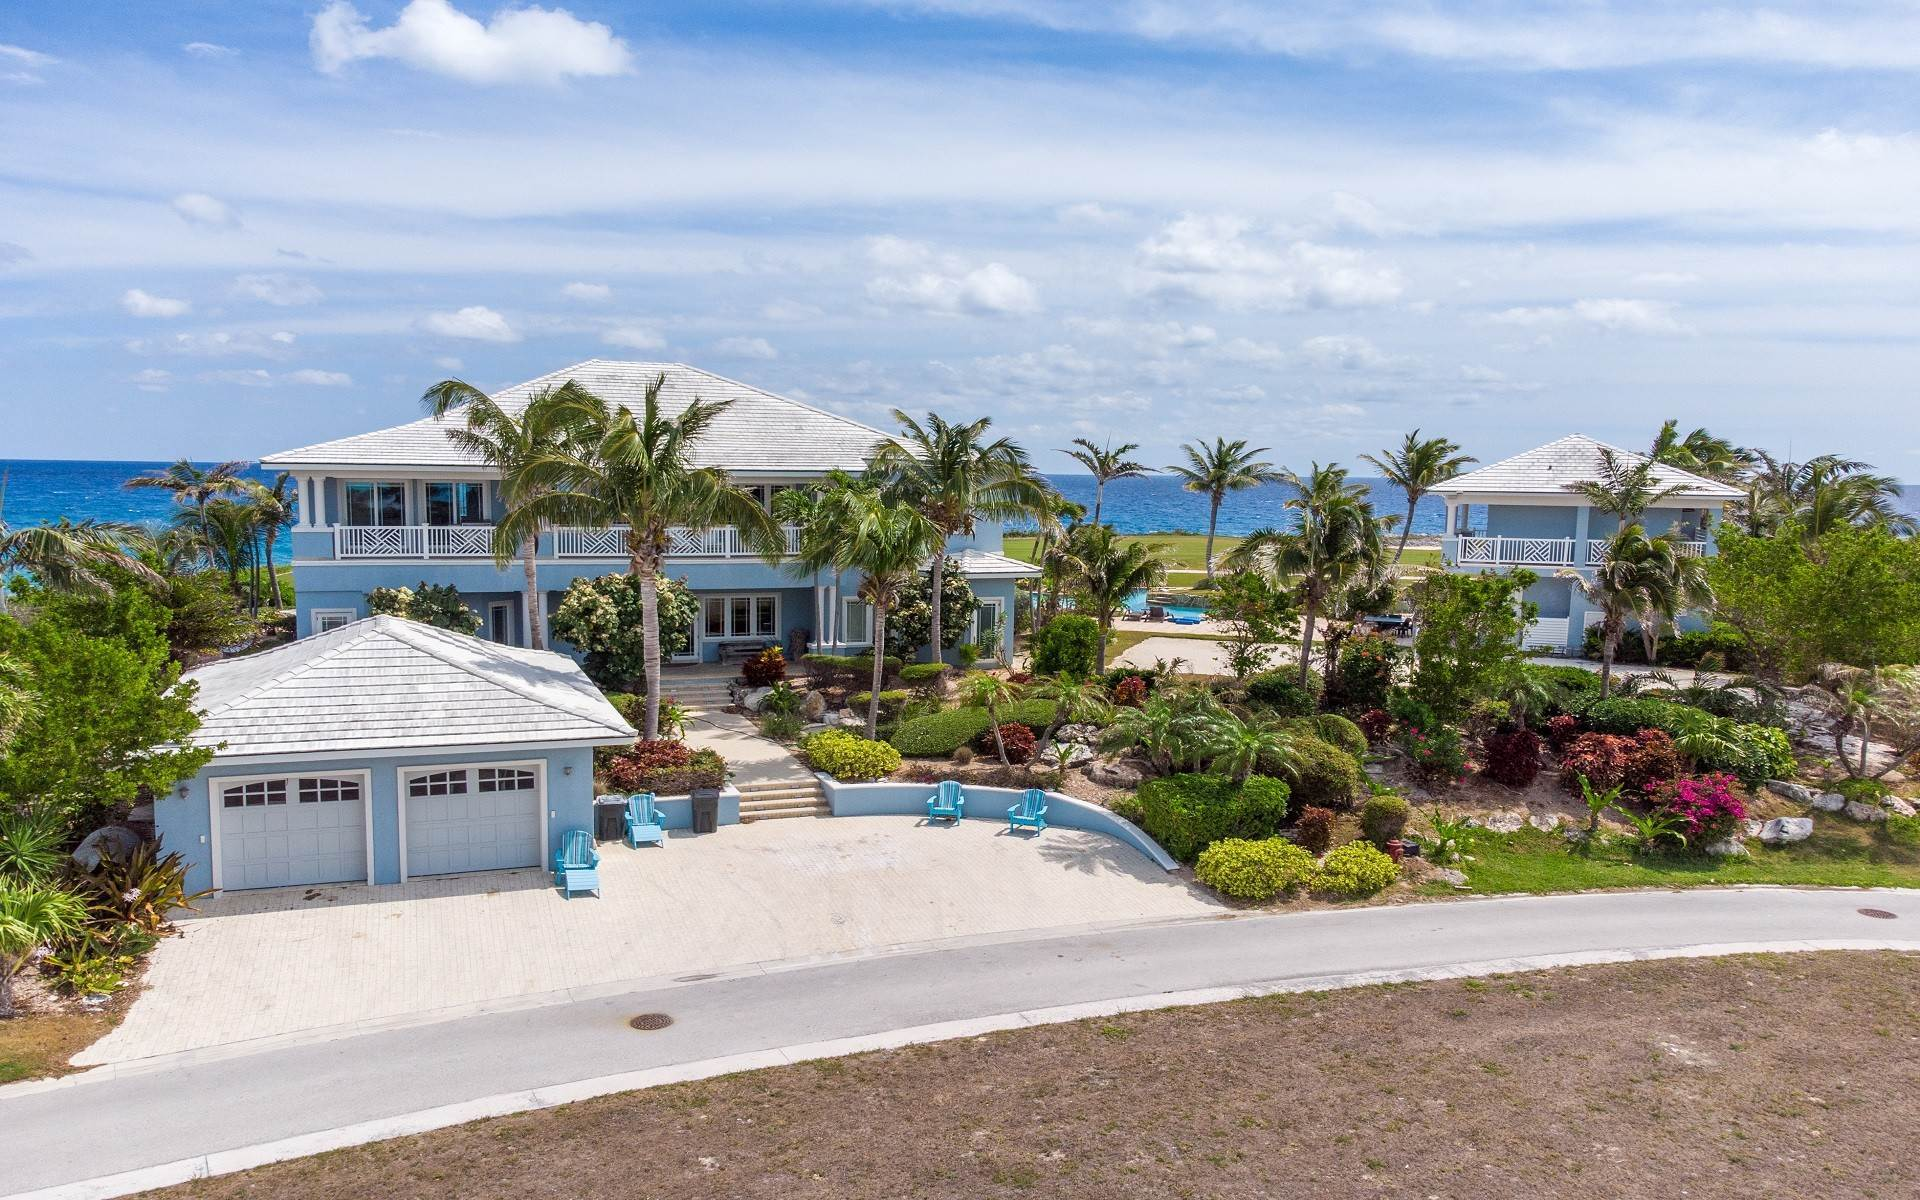 Single Family Home for Sale at Estate Home Auction At Emerald Bay - MLS 44200 Exumas, Bahamas